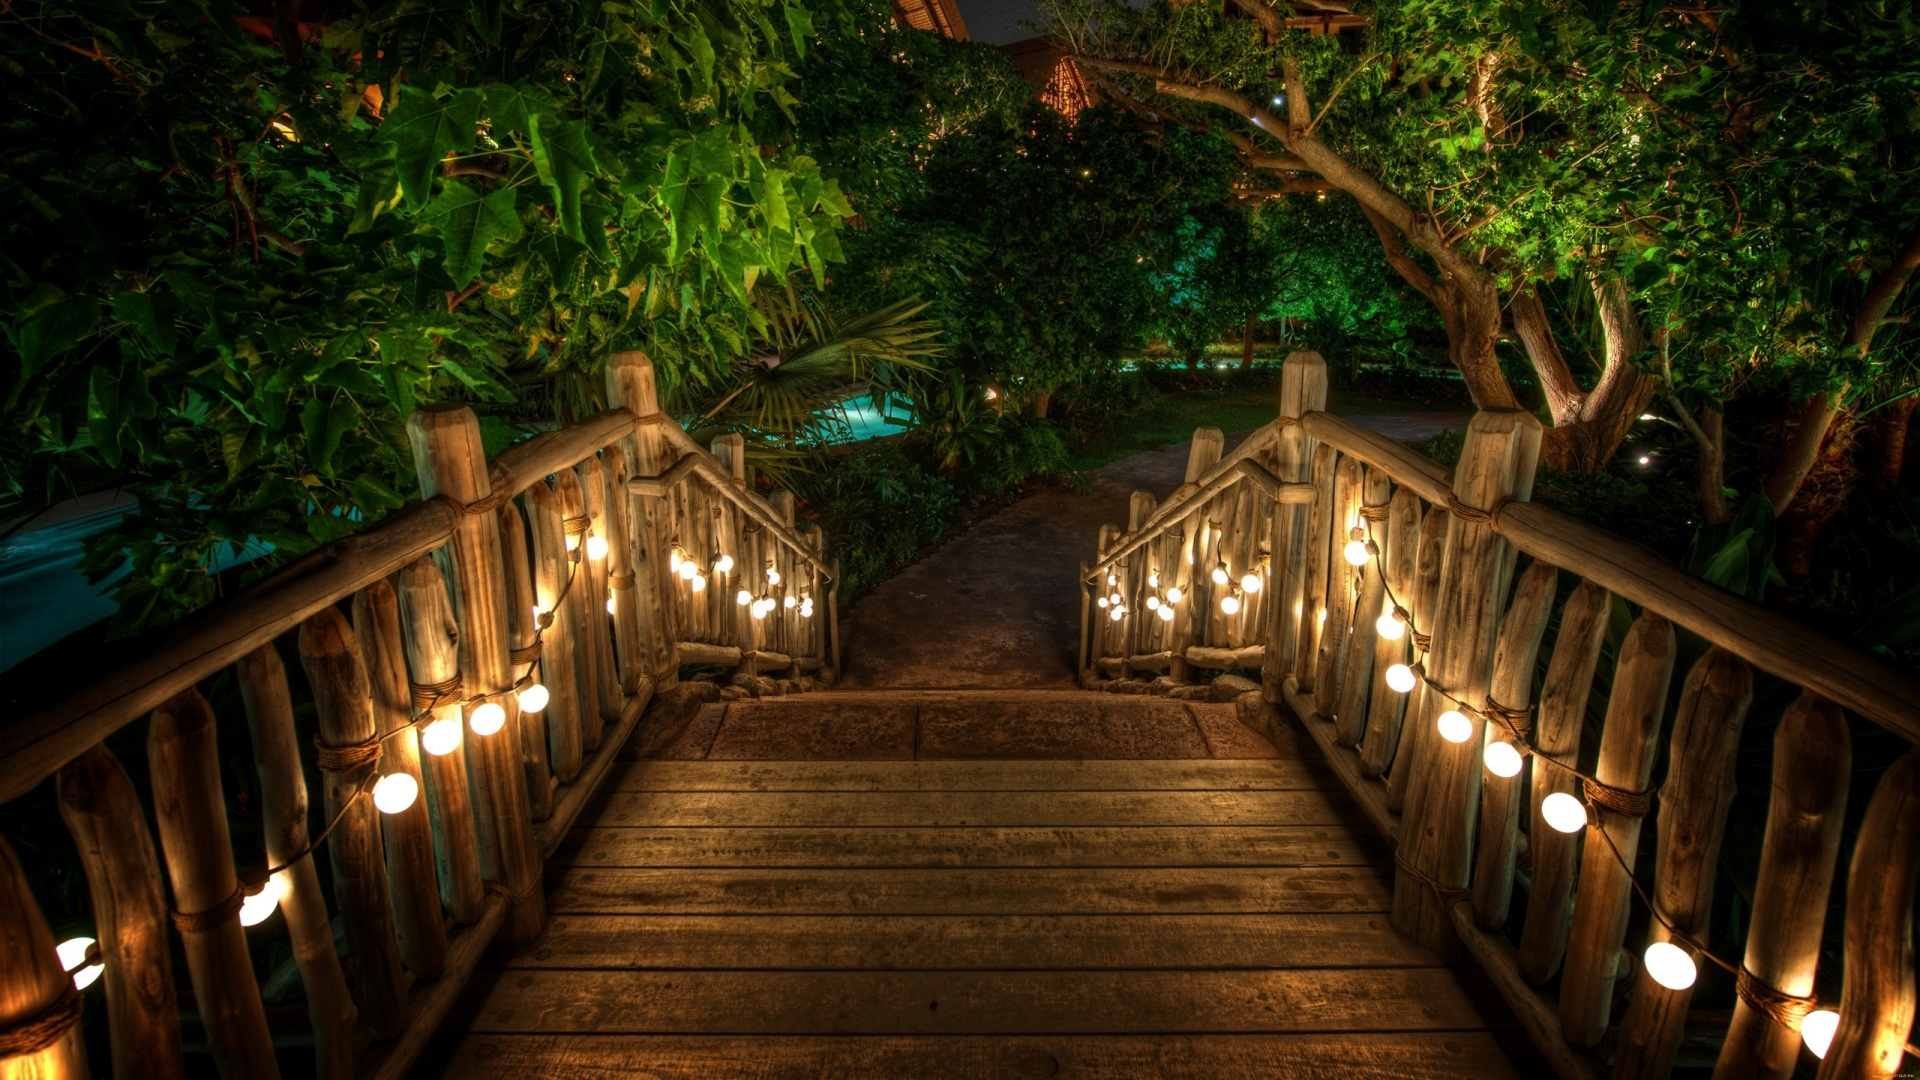 Romantic walkway into the forest